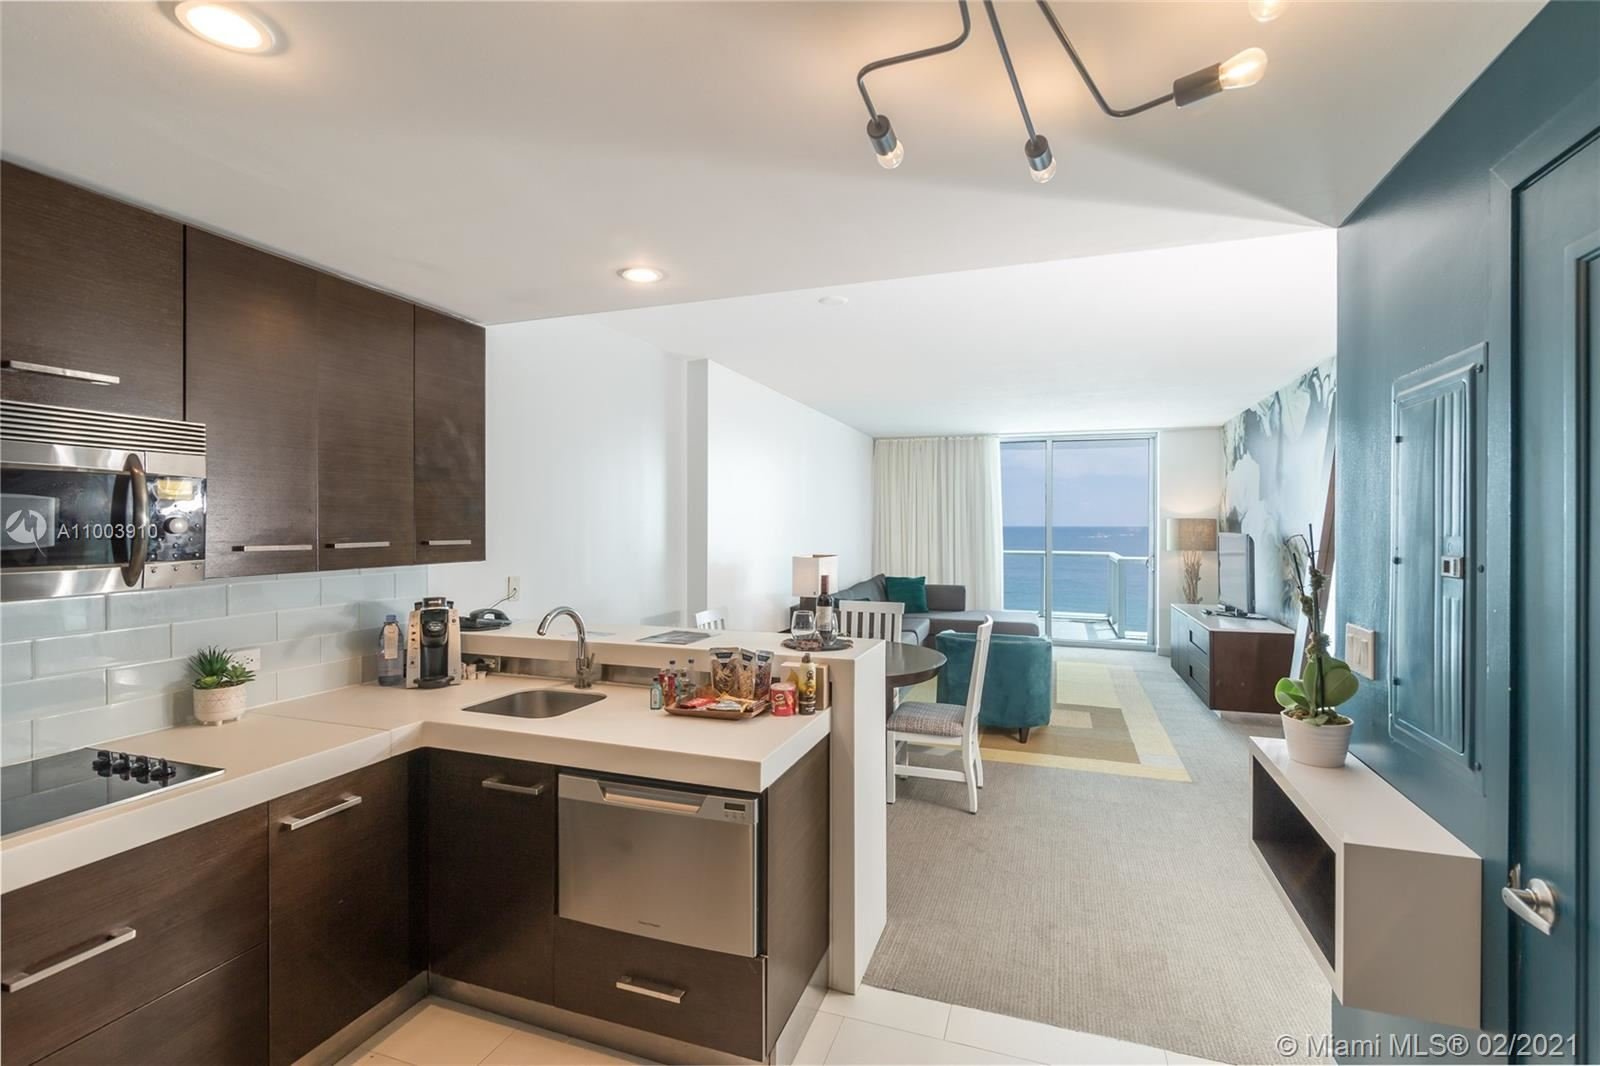 17315 Collins Ave #602A&B, Sunny Isles, FL 33160 - #: A11003910